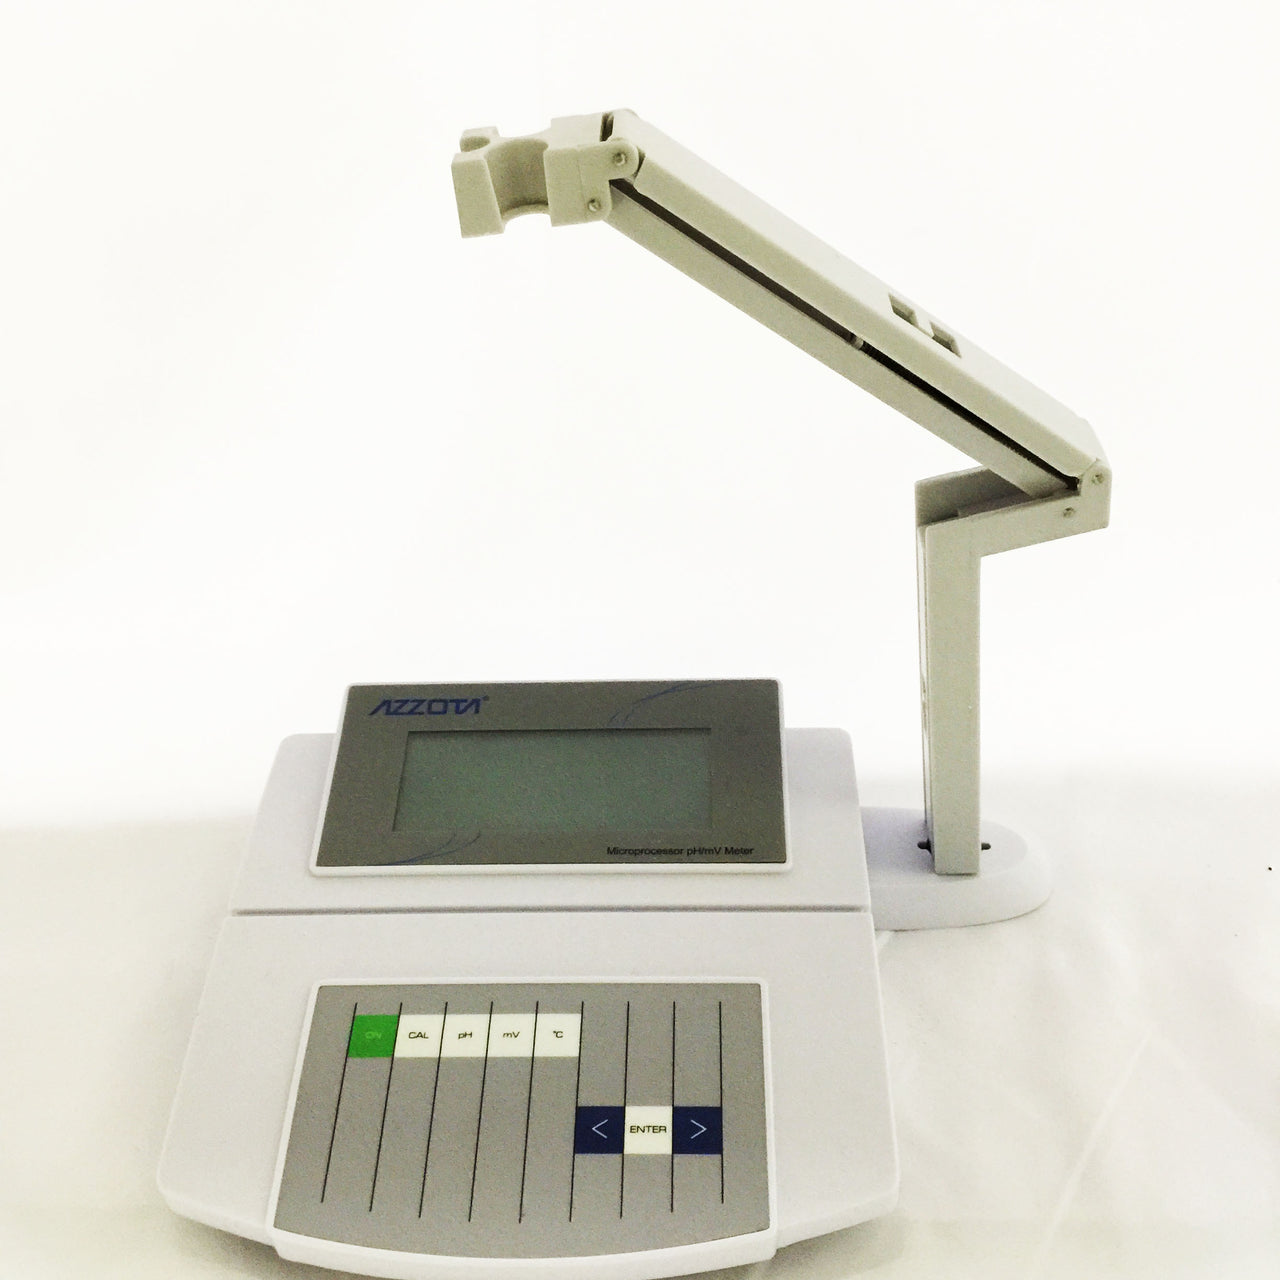 Electrode Stand for Azzota pH meters can hold Electrodes and Temp Probe